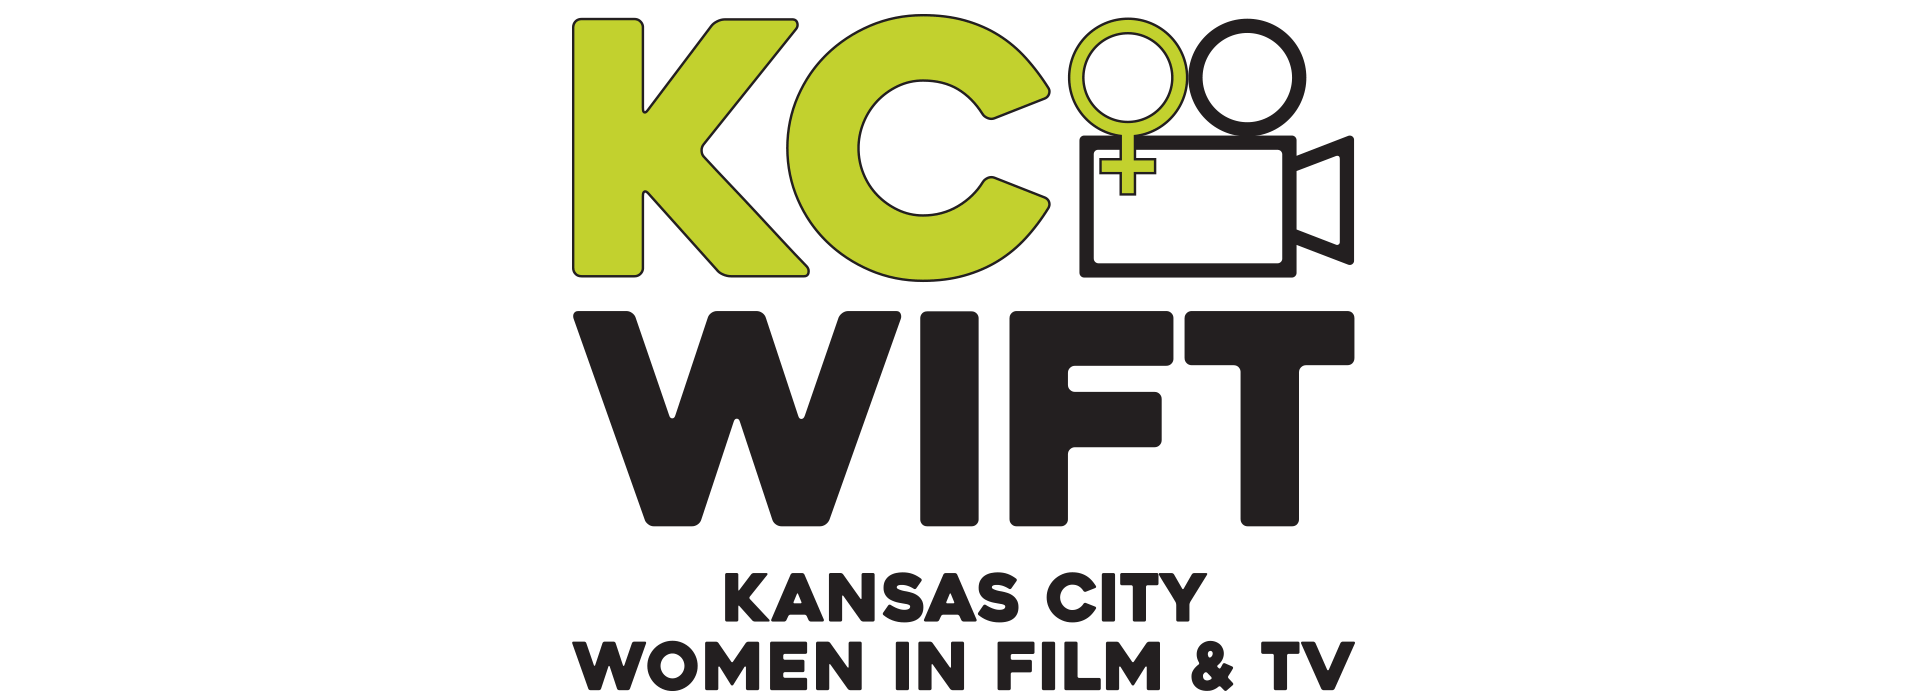 Kansas City Women in Film & TV